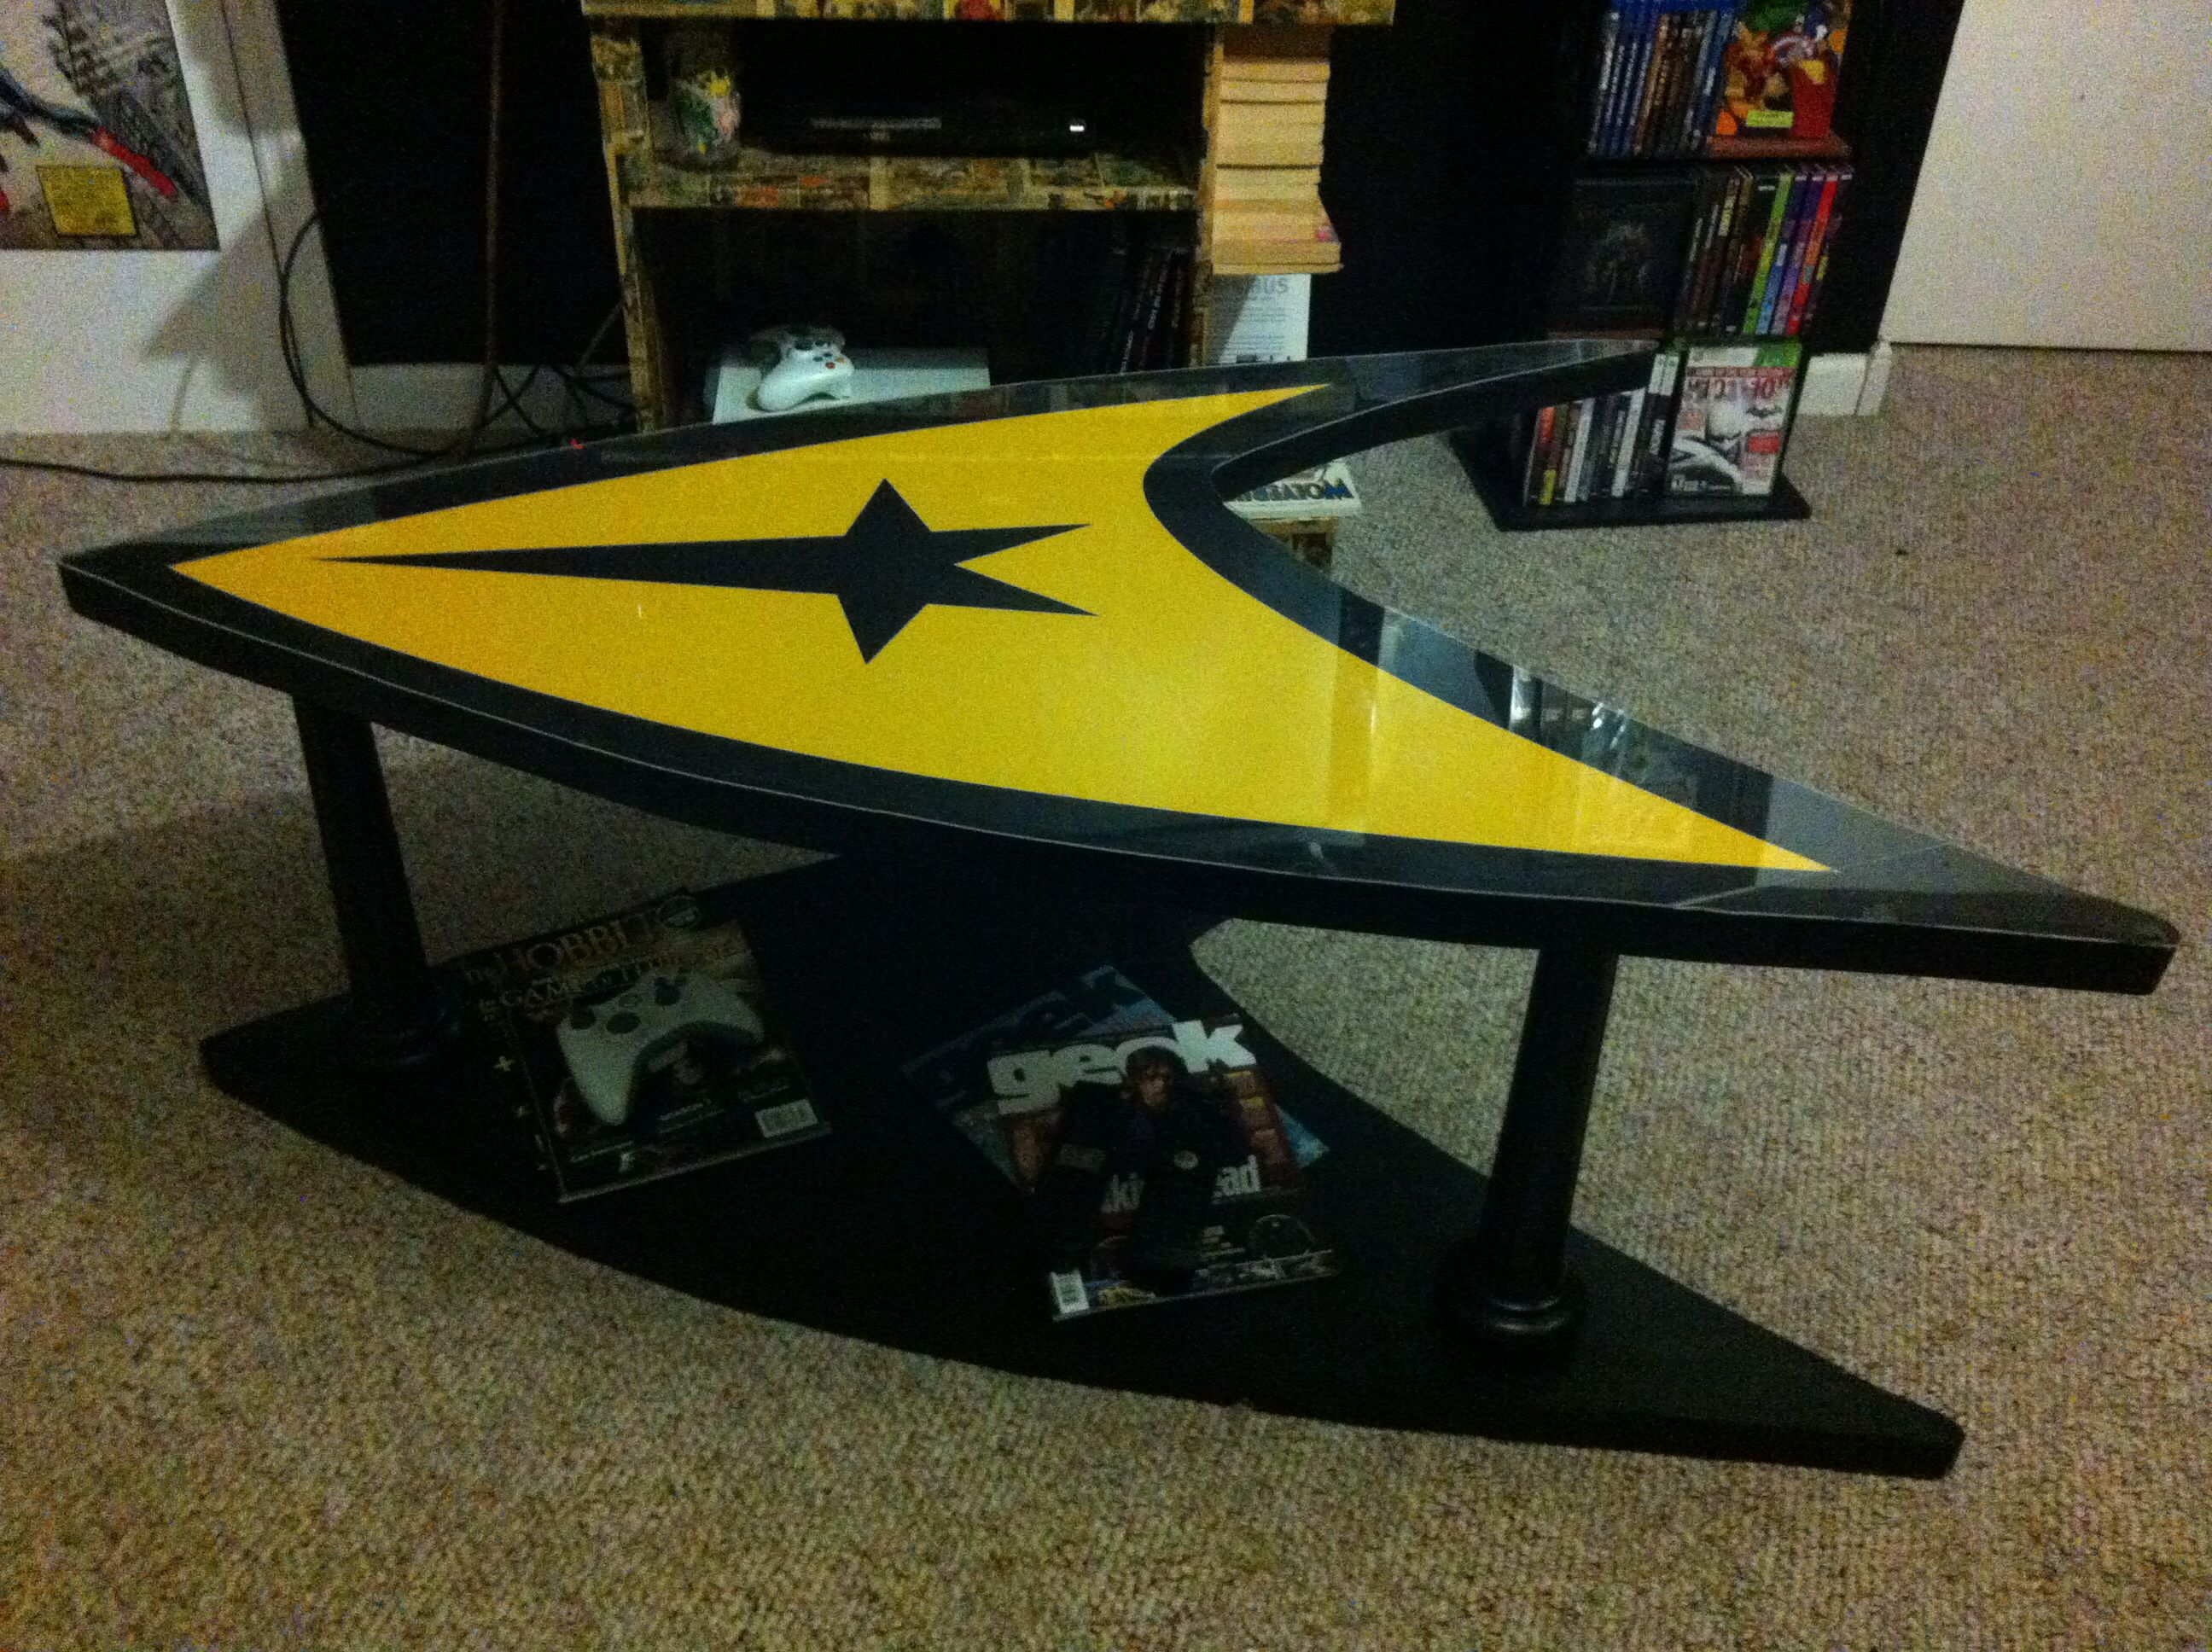 Geeky Coffee Tables Home Made Star Trek Coffee Table Made By My Aunt And Uncle